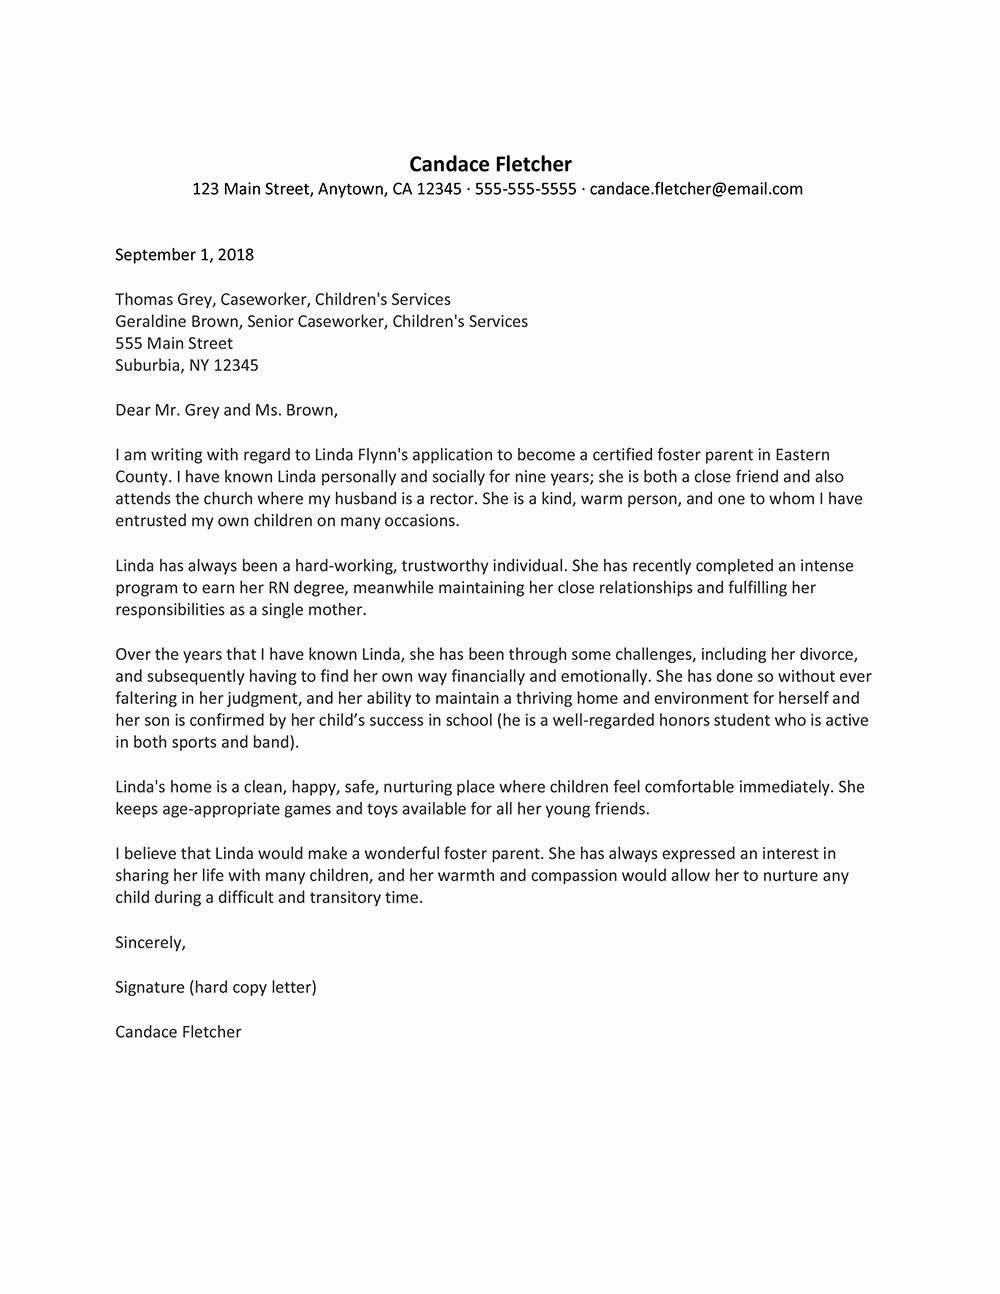 Letter Of Recommendation for Caregiver Lovely Letter Re Mendation for Special Needs Caregiver